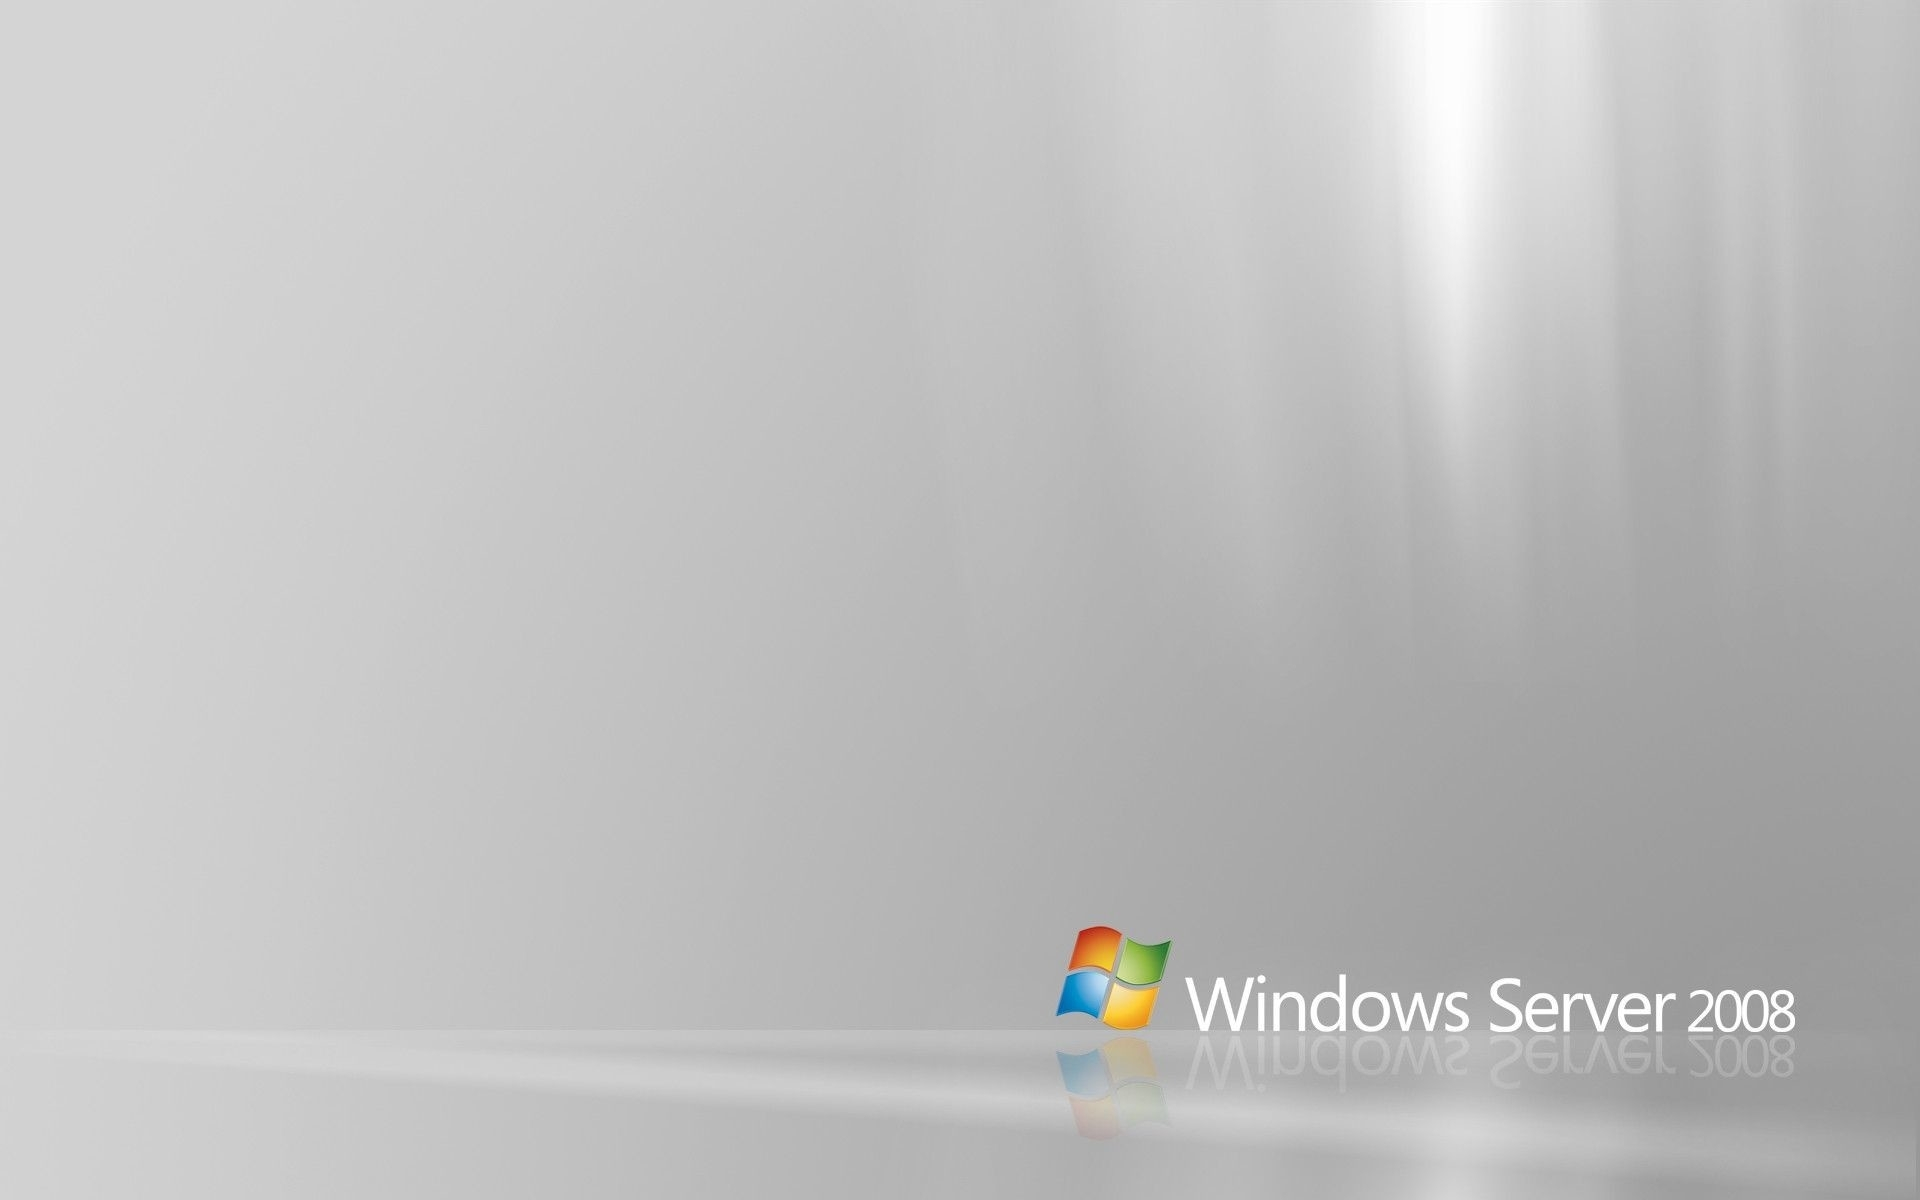 10 New Windows Server 2008 Wallpaper FULL HD 1080p For PC Desktop